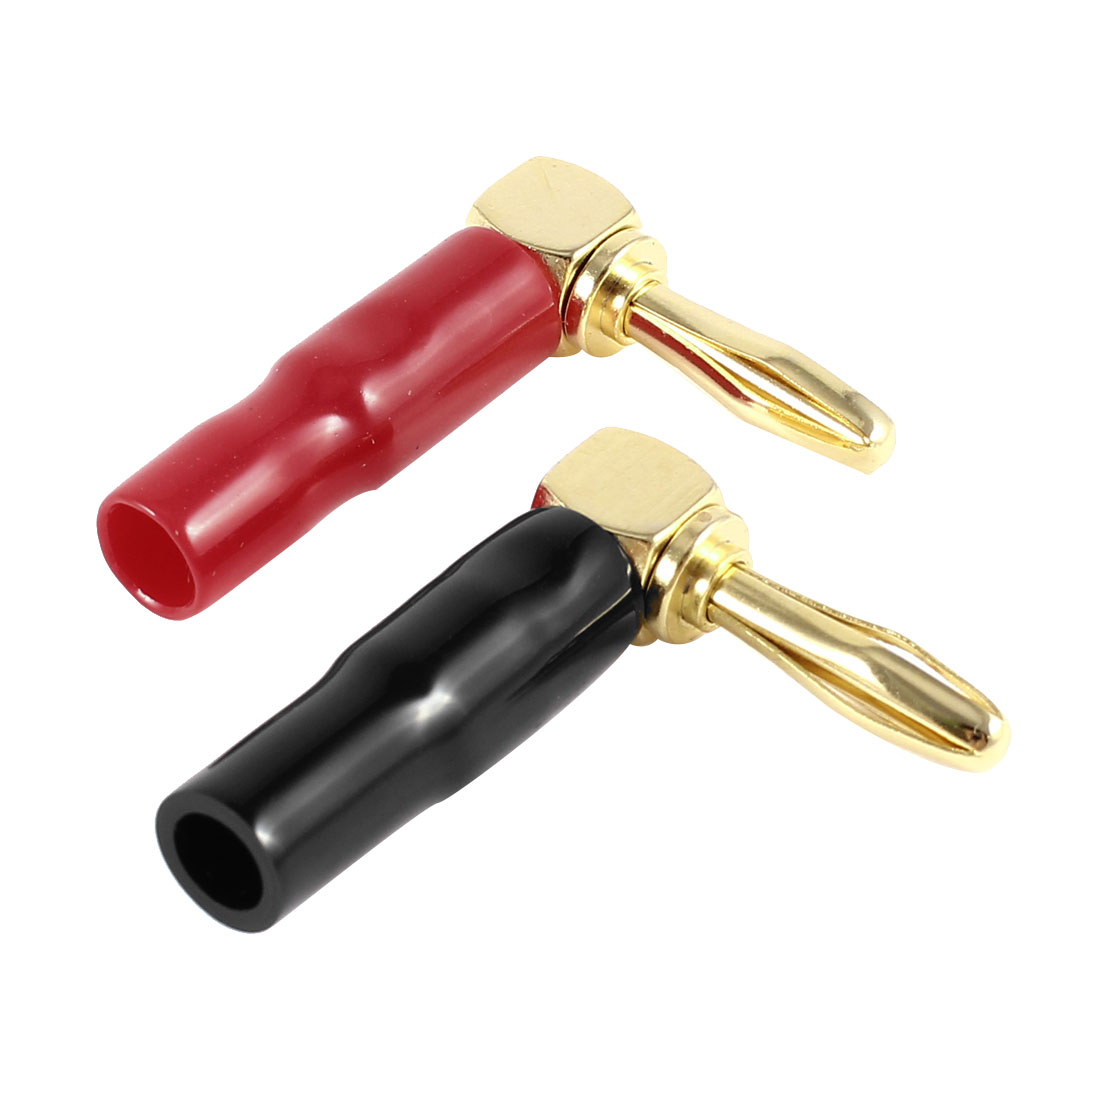 Audio Speaker Cable Connector Right Angle Screw Type Banana Adapter Red Black 2 Pcs